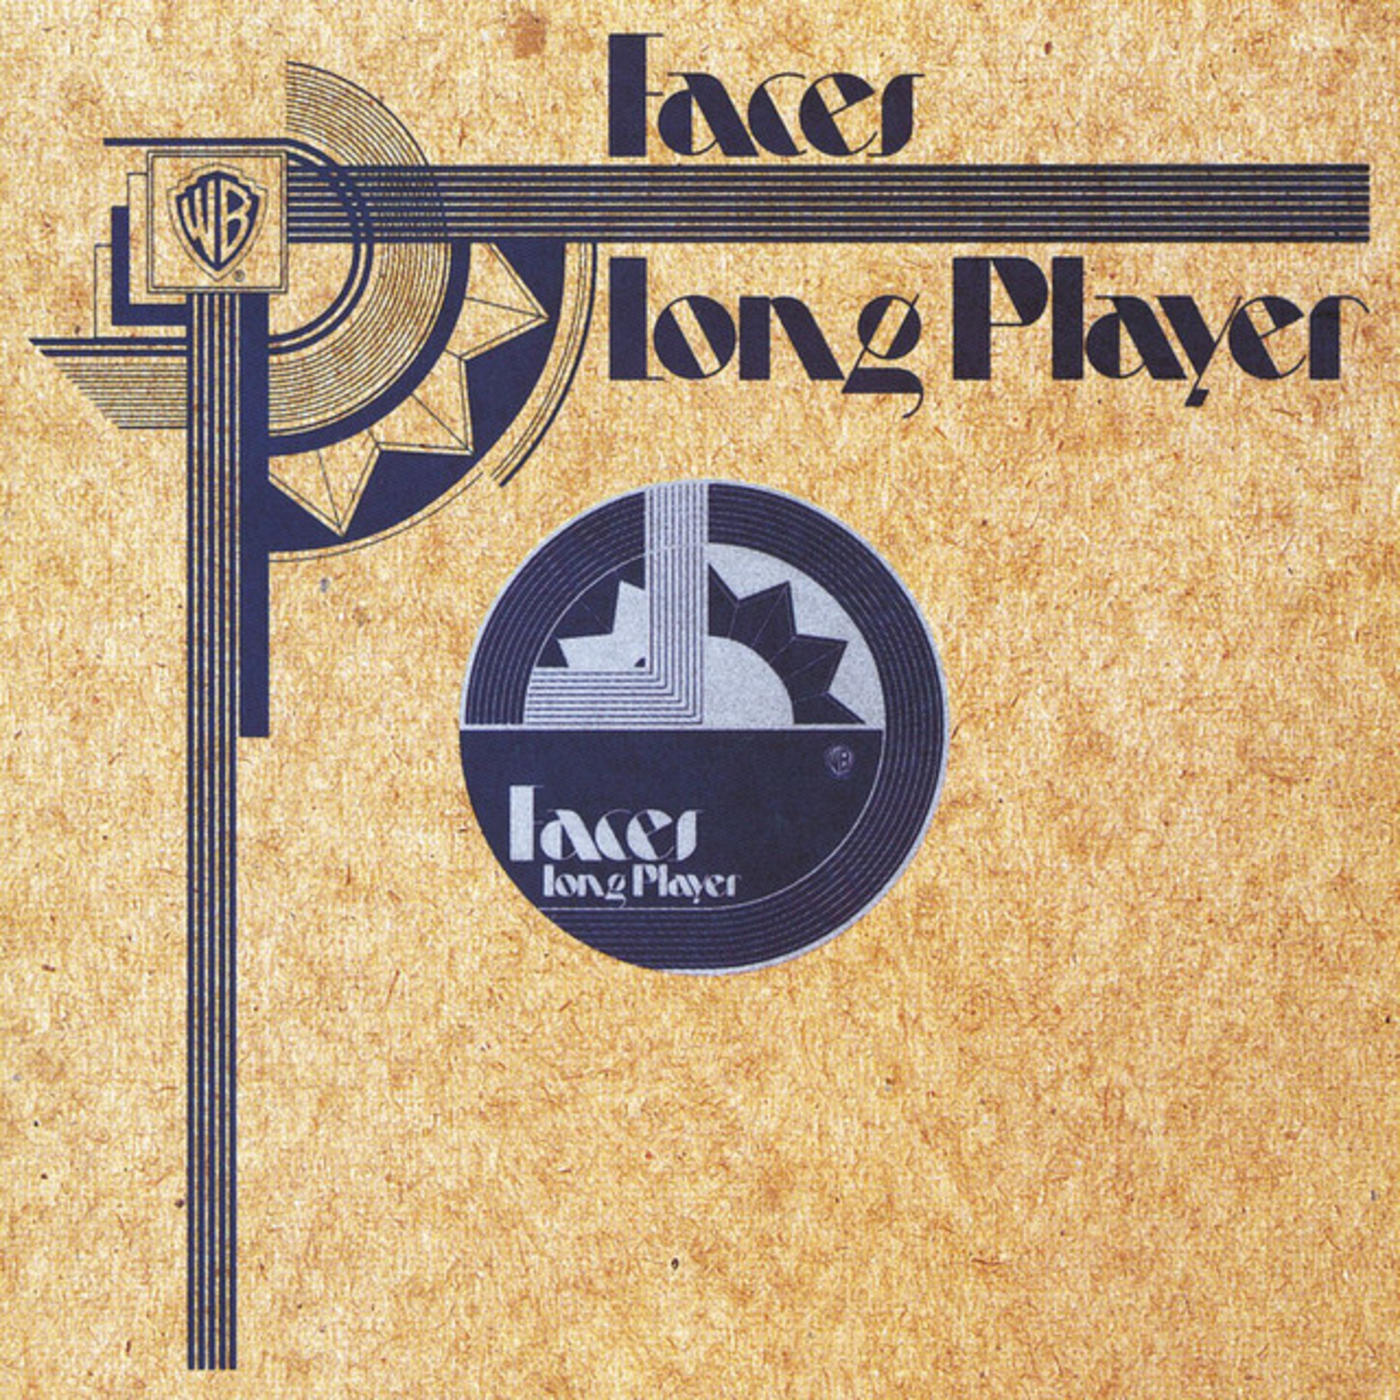 Long Player